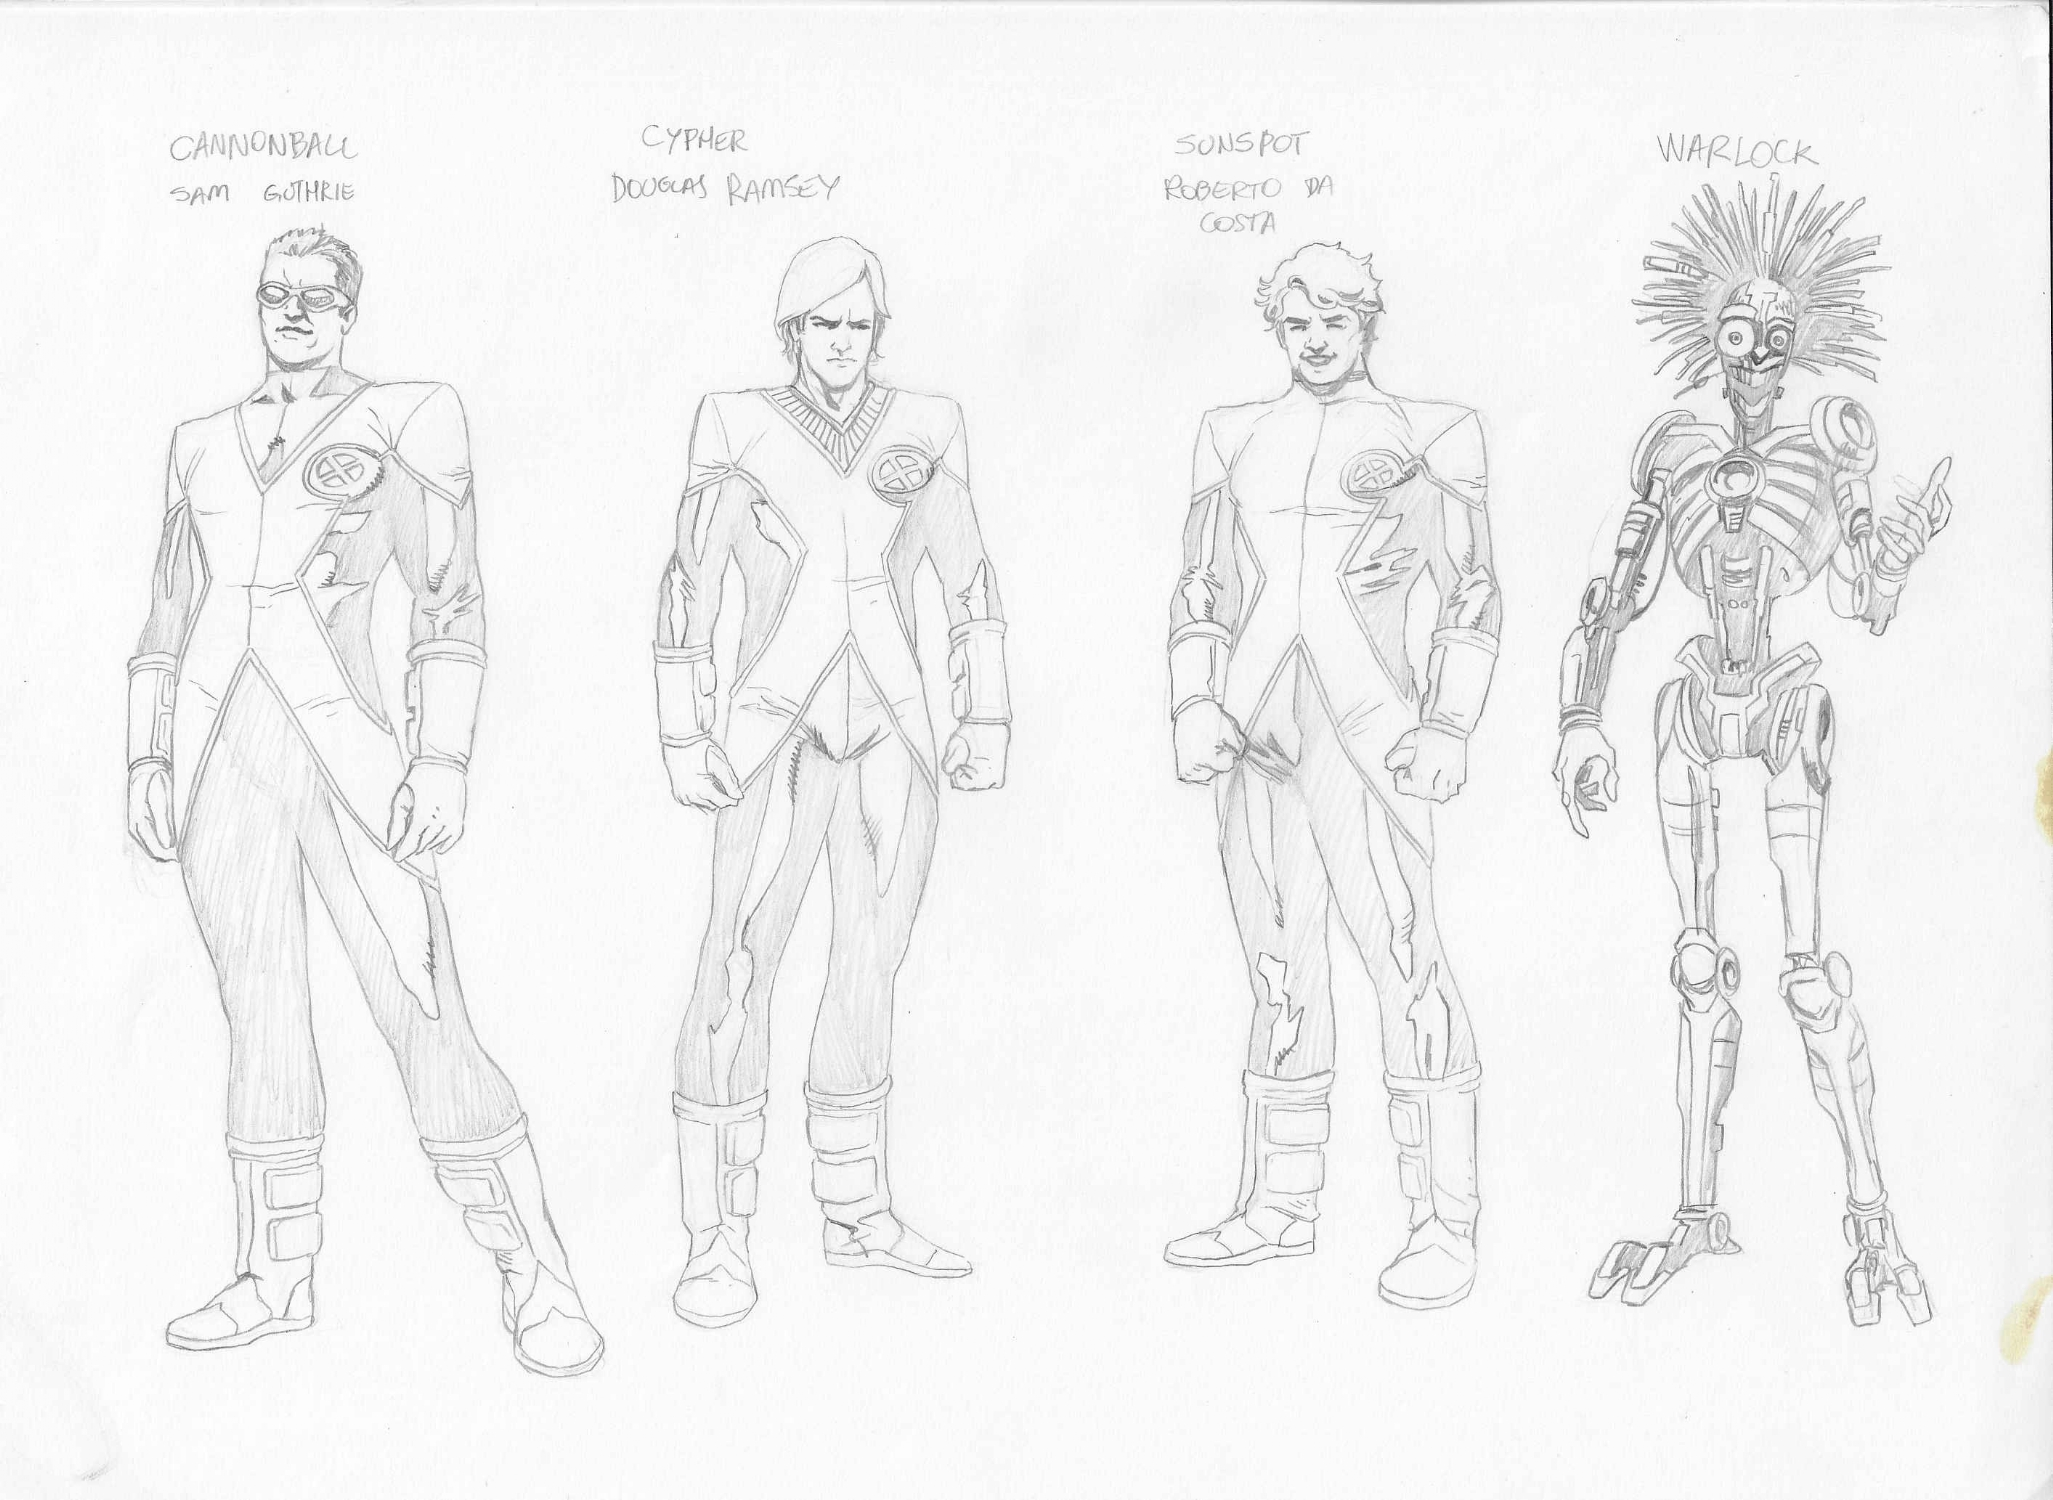 New Mutants Character Designs - Cannonball, Cypher, Sunspot and Warlock